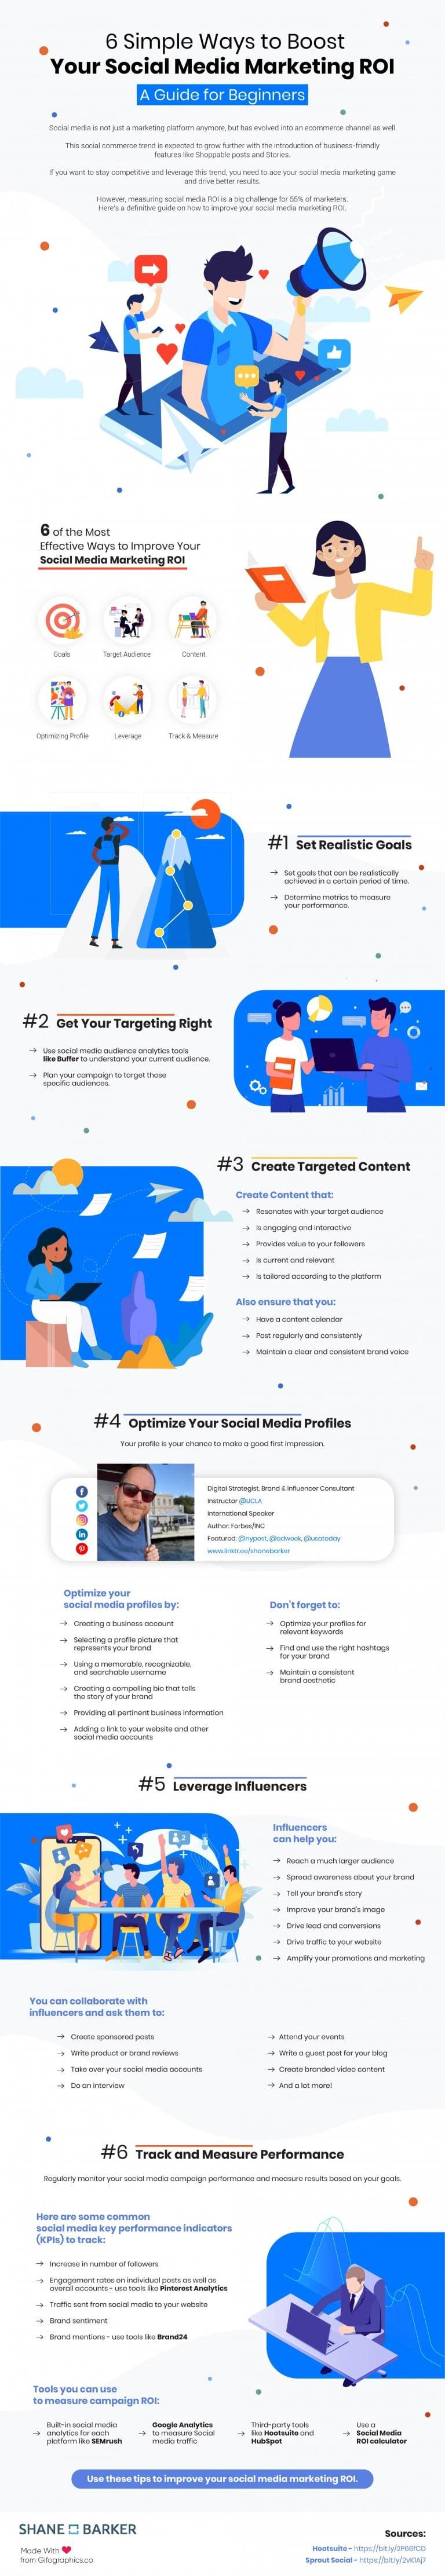 Ways to boost your social media marketing roi - Infographic